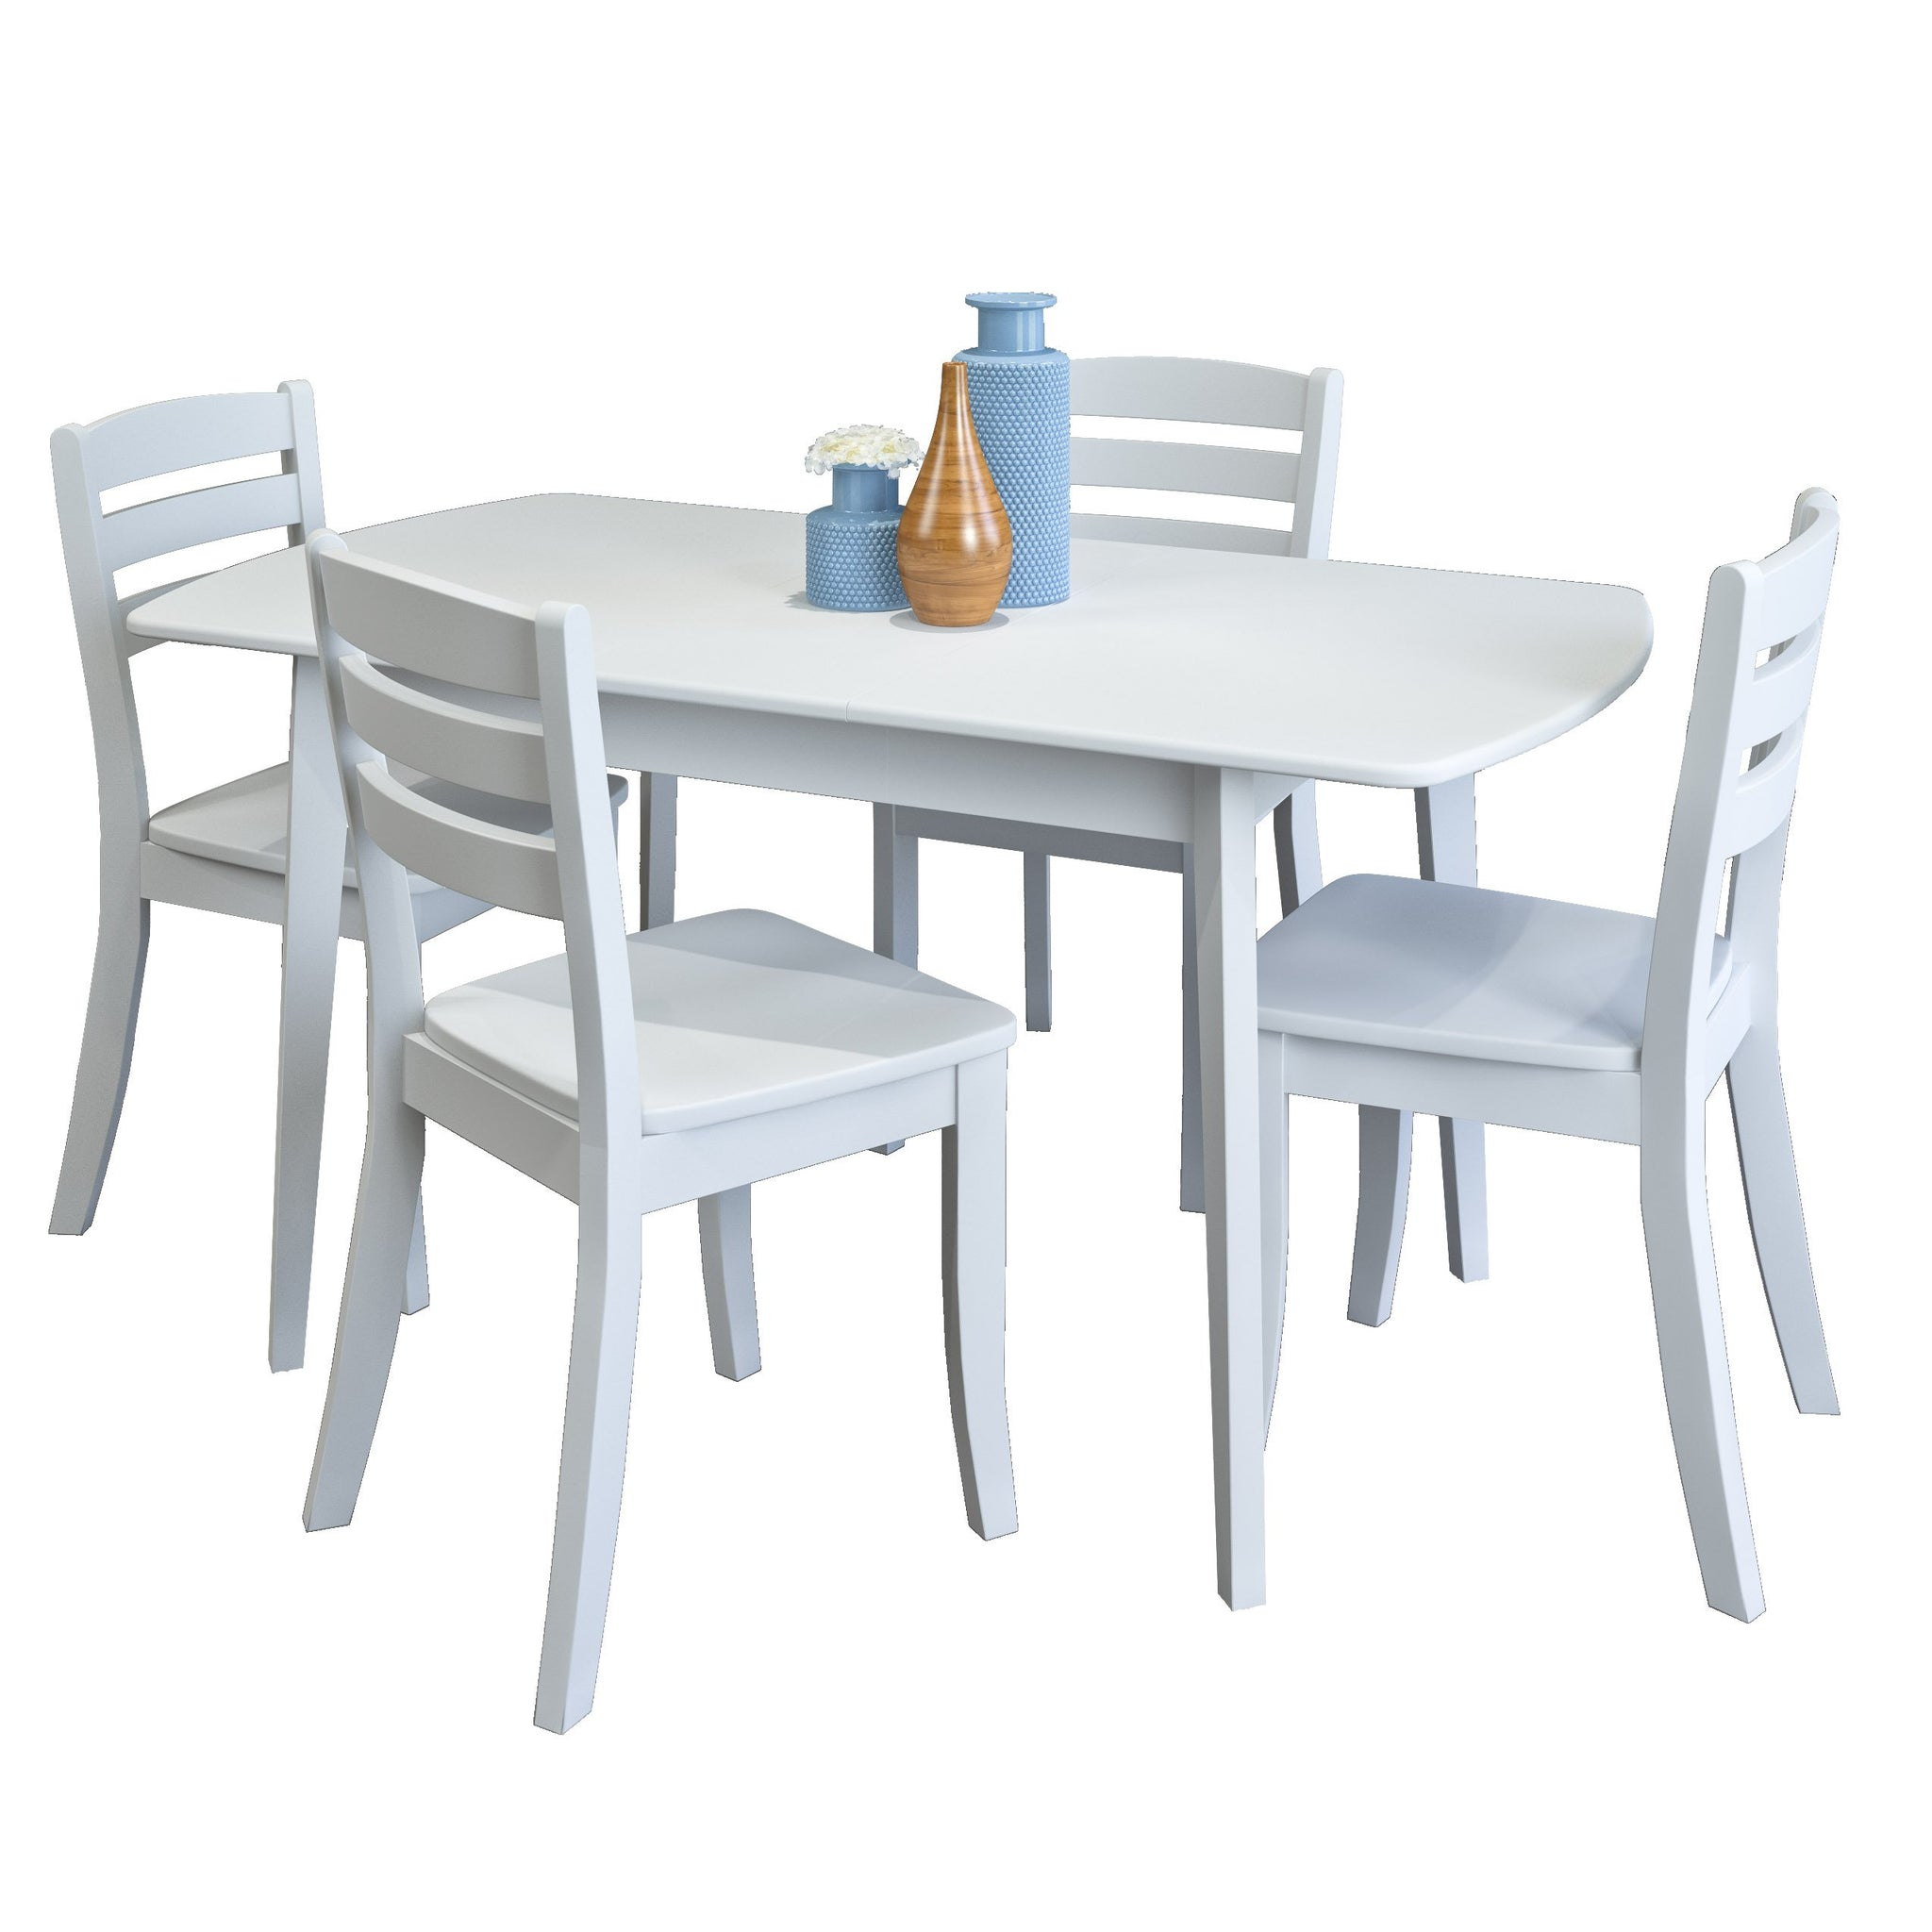 Dining Room Table With Hidden Leaf